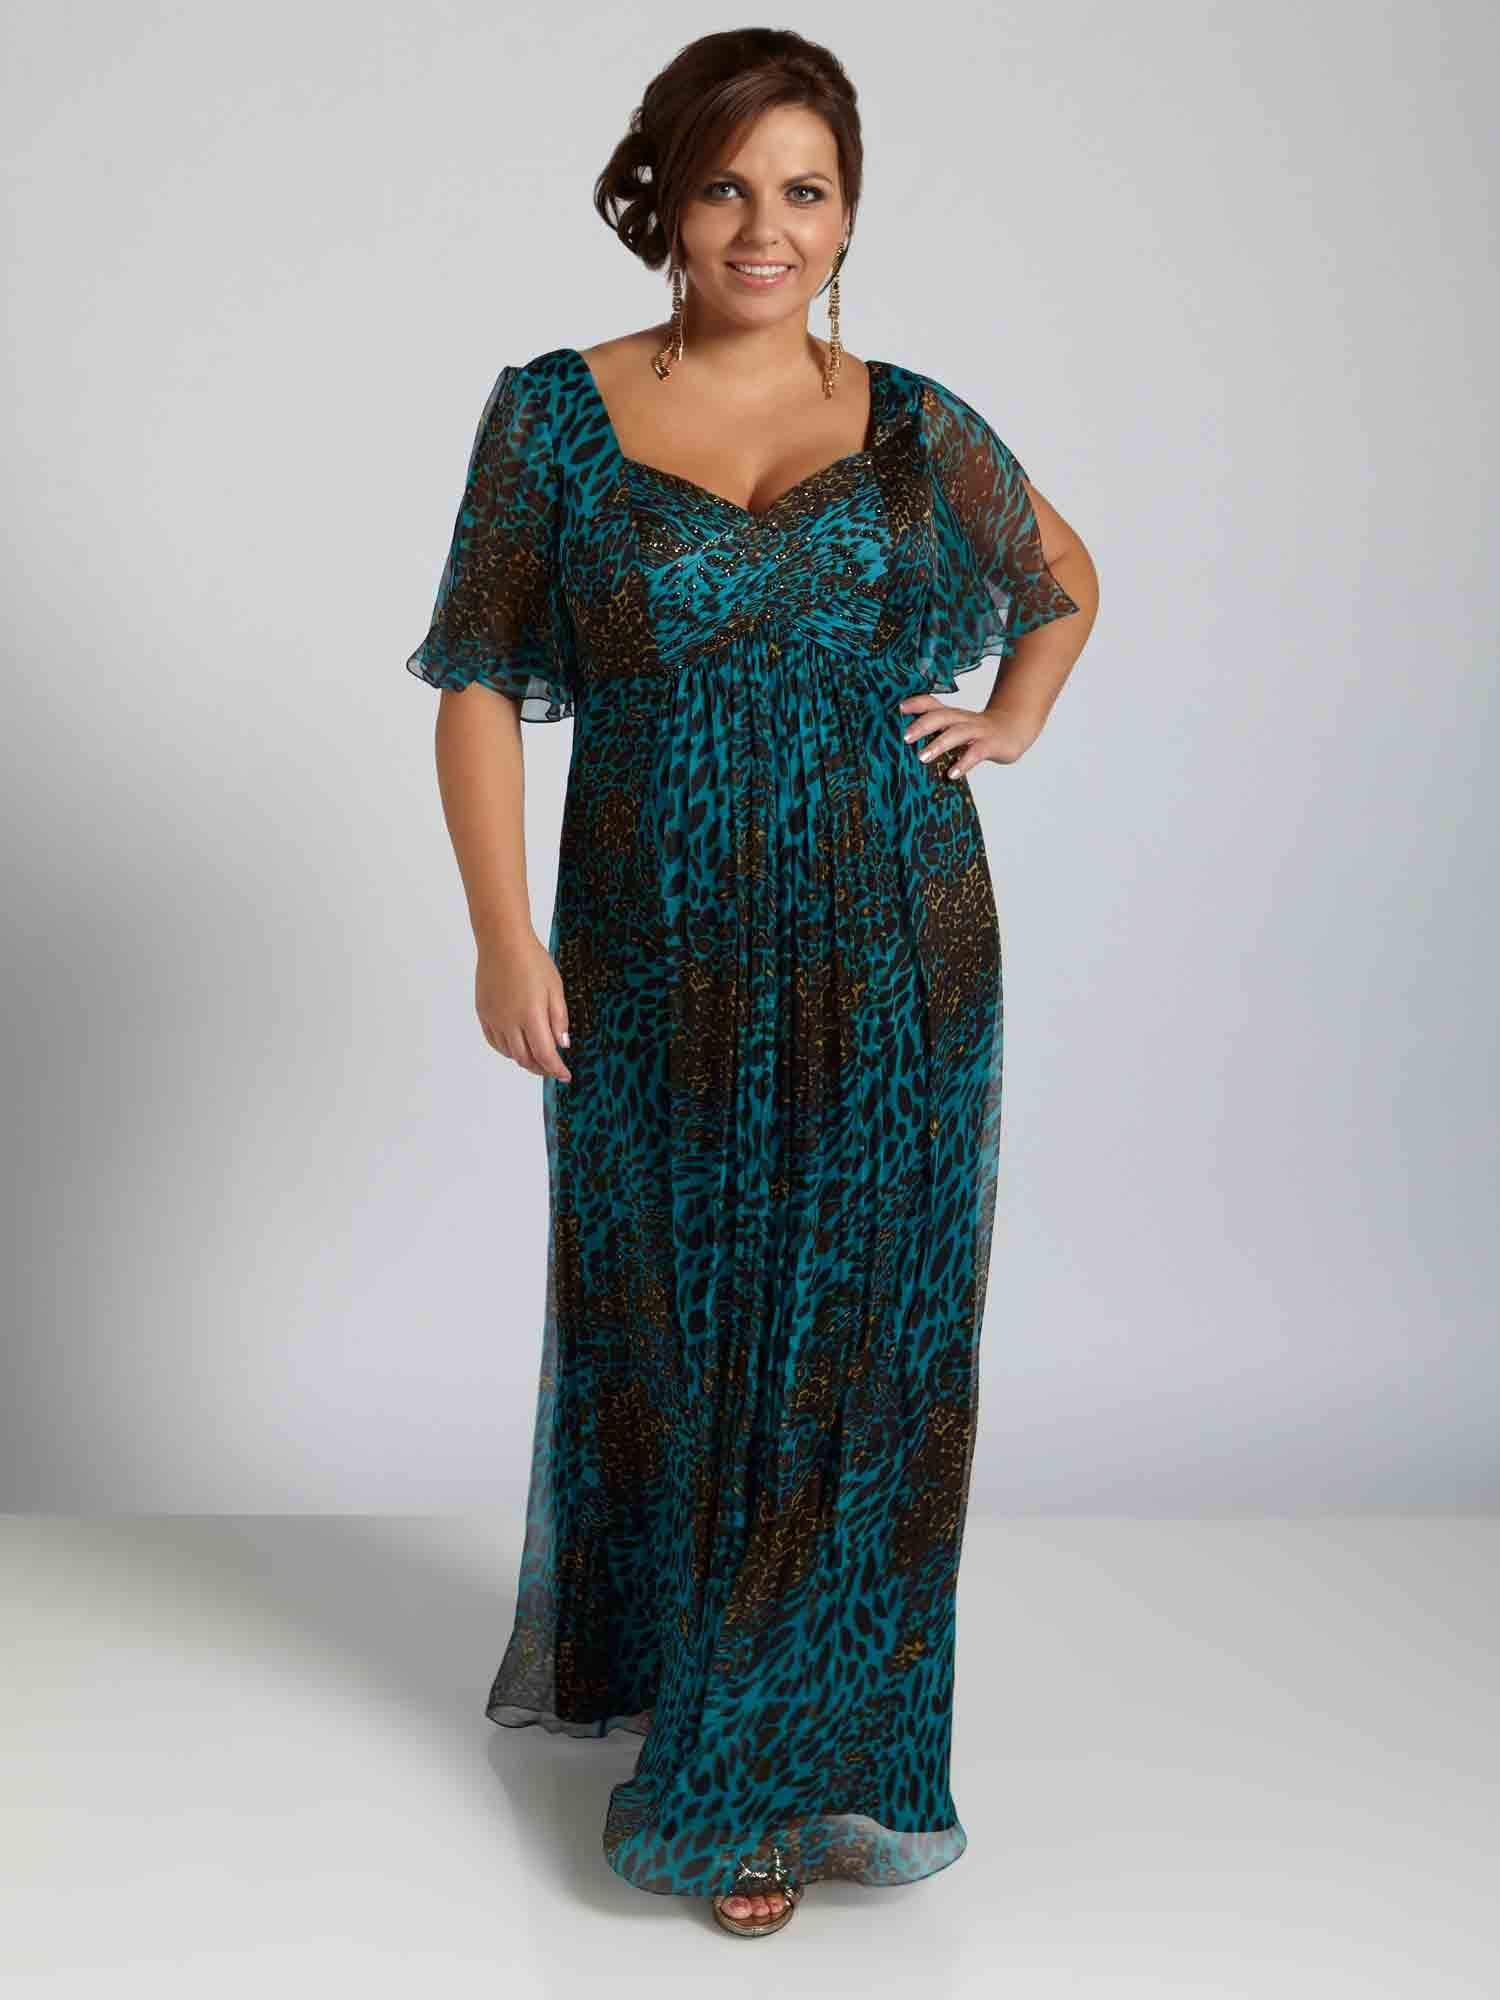 20 Plus Size Evening Dresses to Look Like Queen | BIG STUFF ...